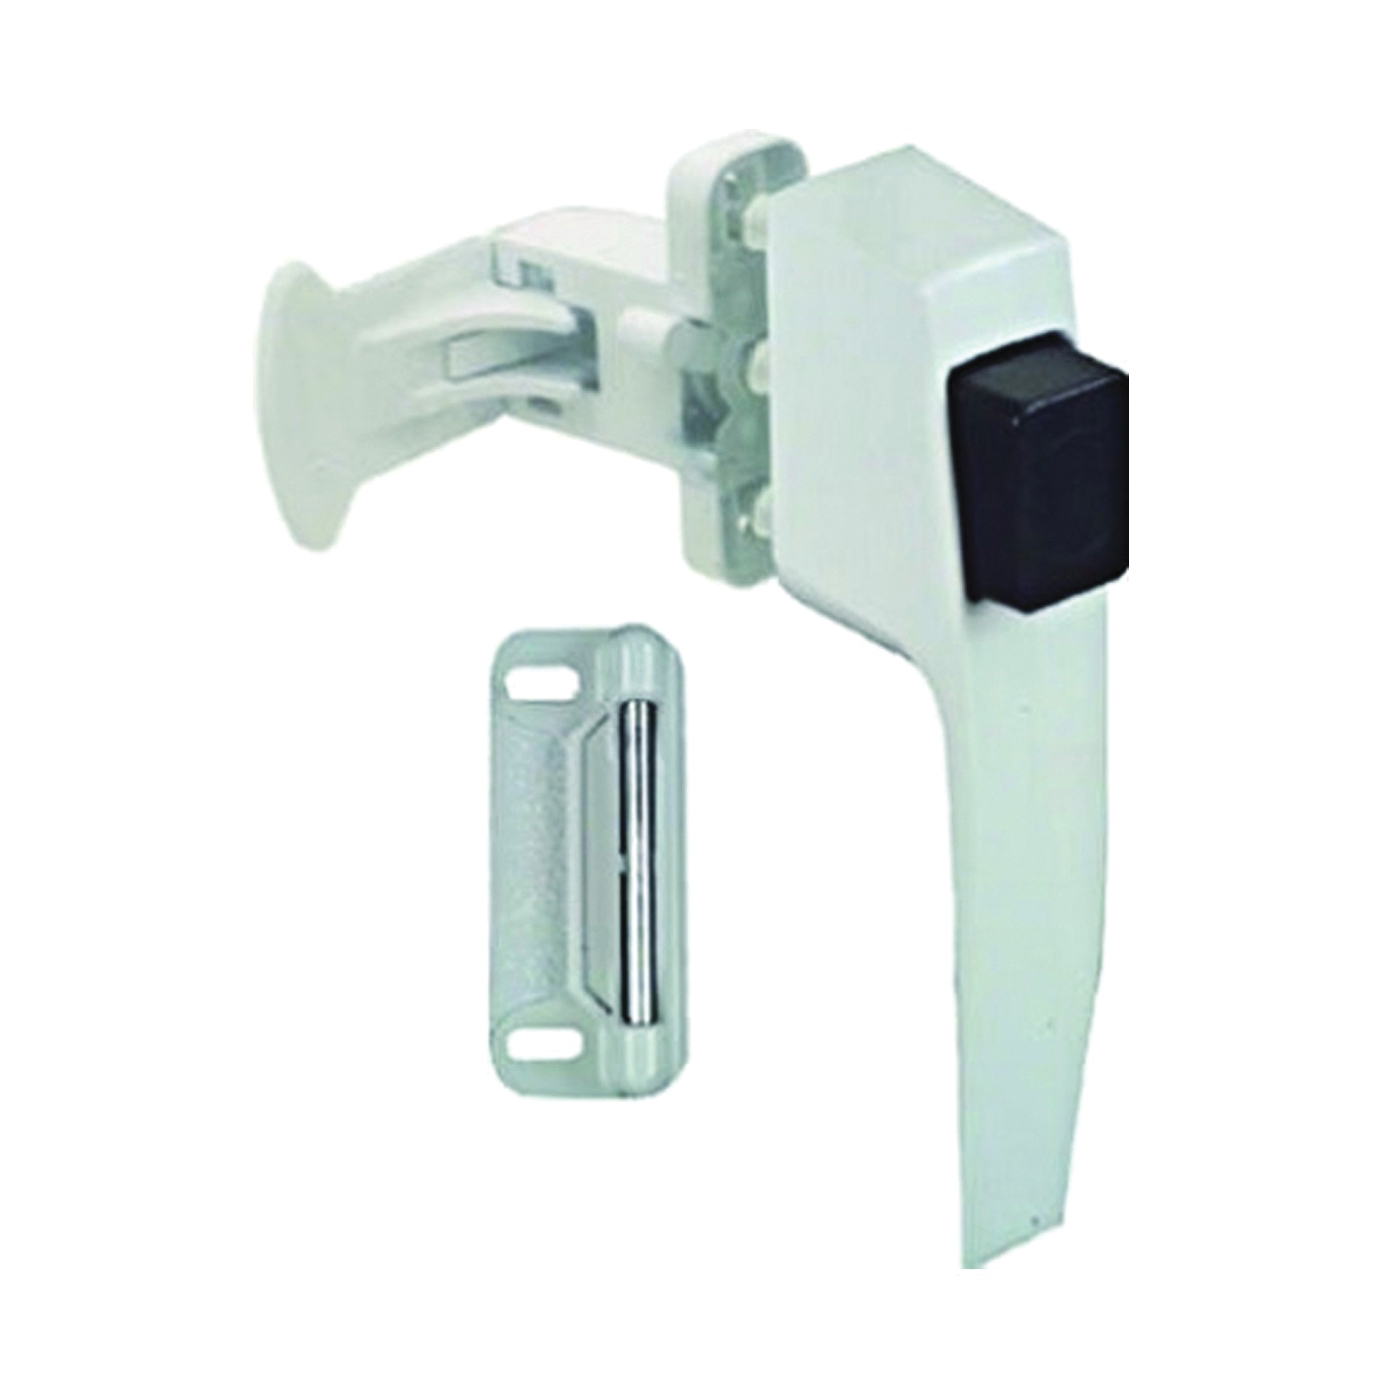 Picture of National Hardware V1326 Series N213-165 Pushbutton Latch, Zinc, 5/8 to 2 in Thick Door